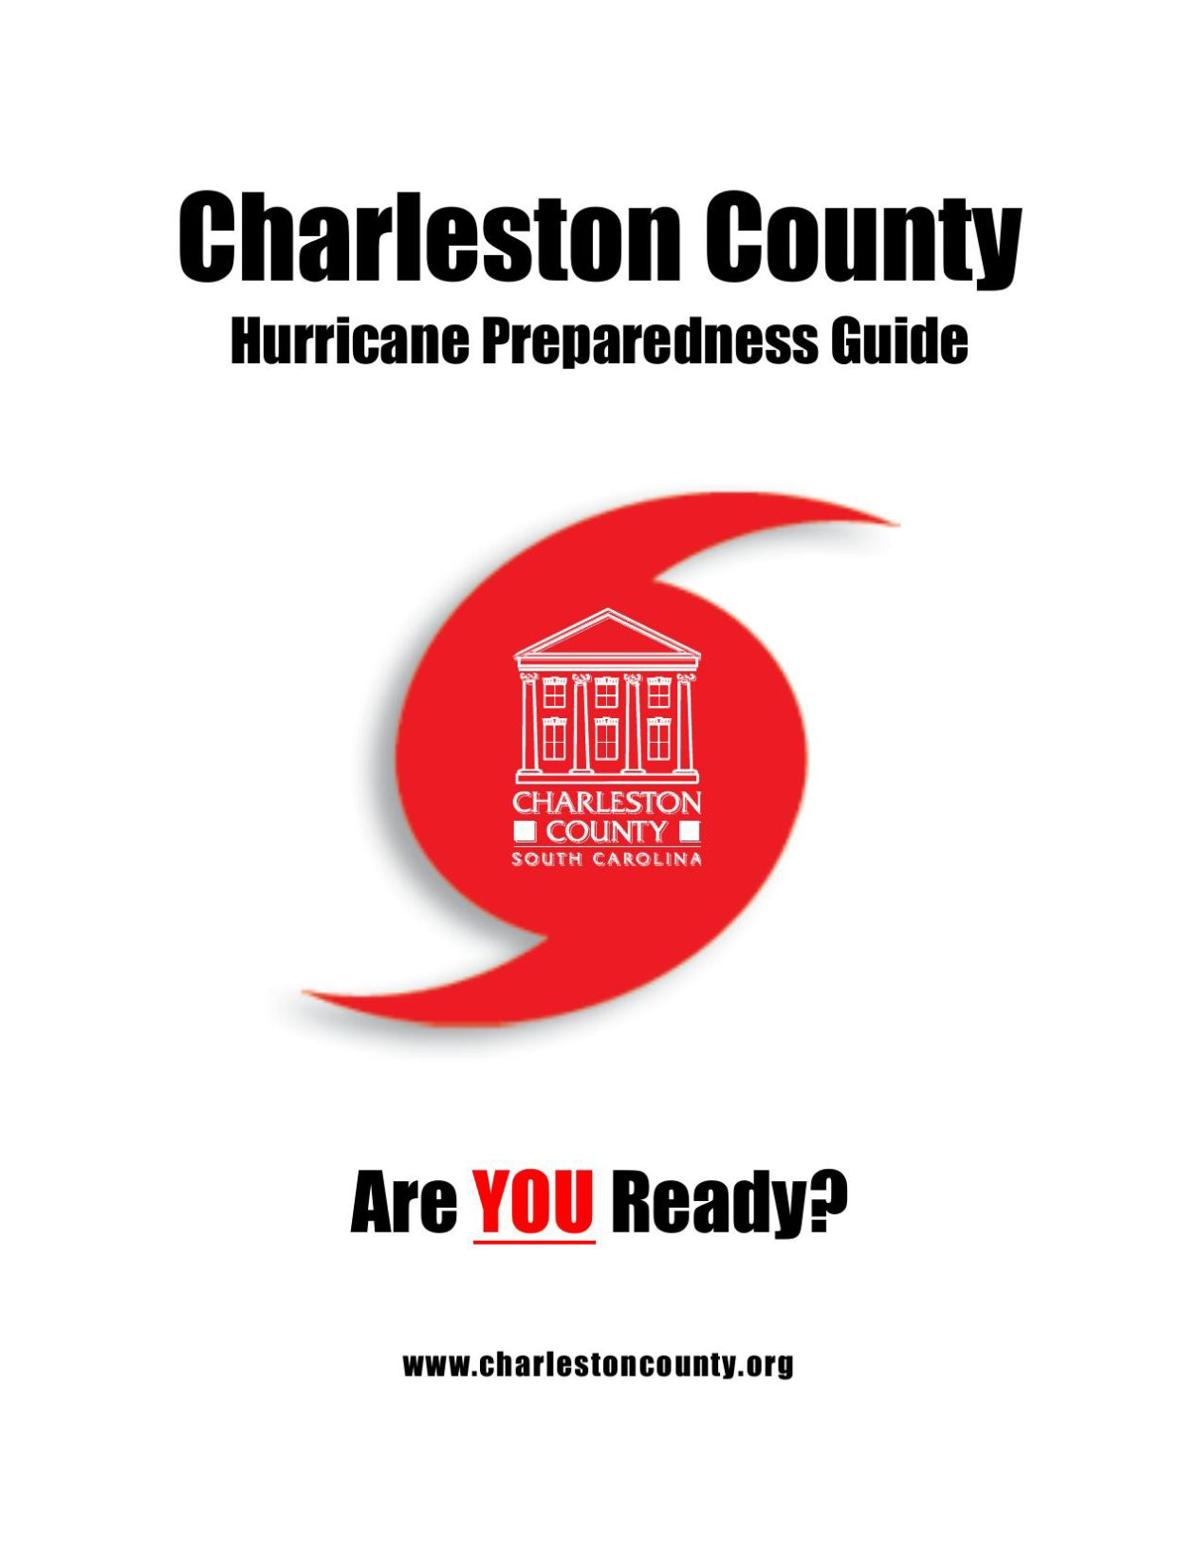 Charleston County Hurricane Preparedness Guide